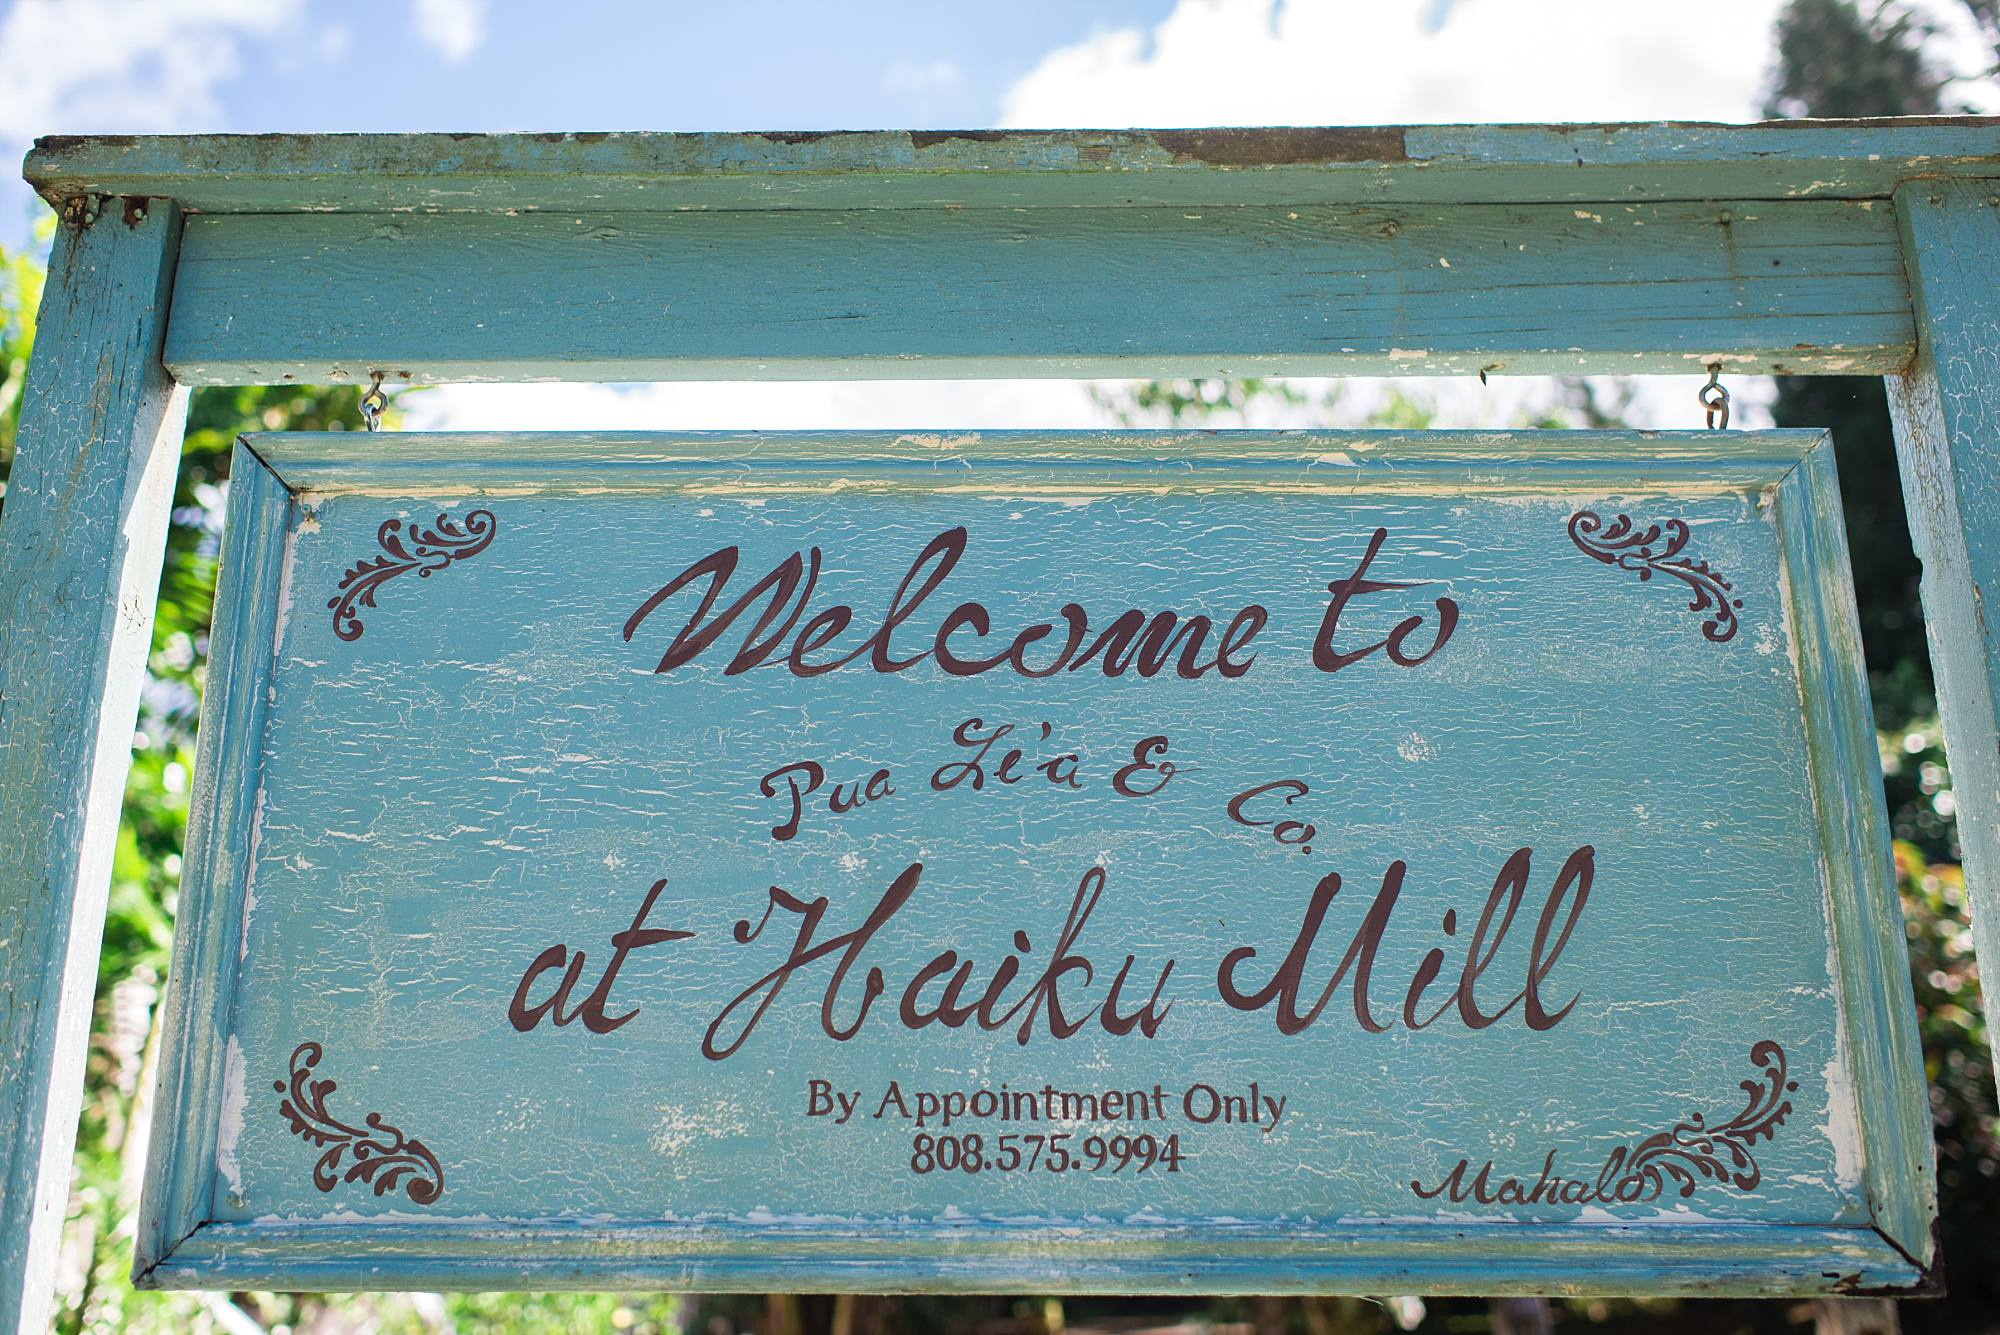 Welcome to Haiku Mill Sign